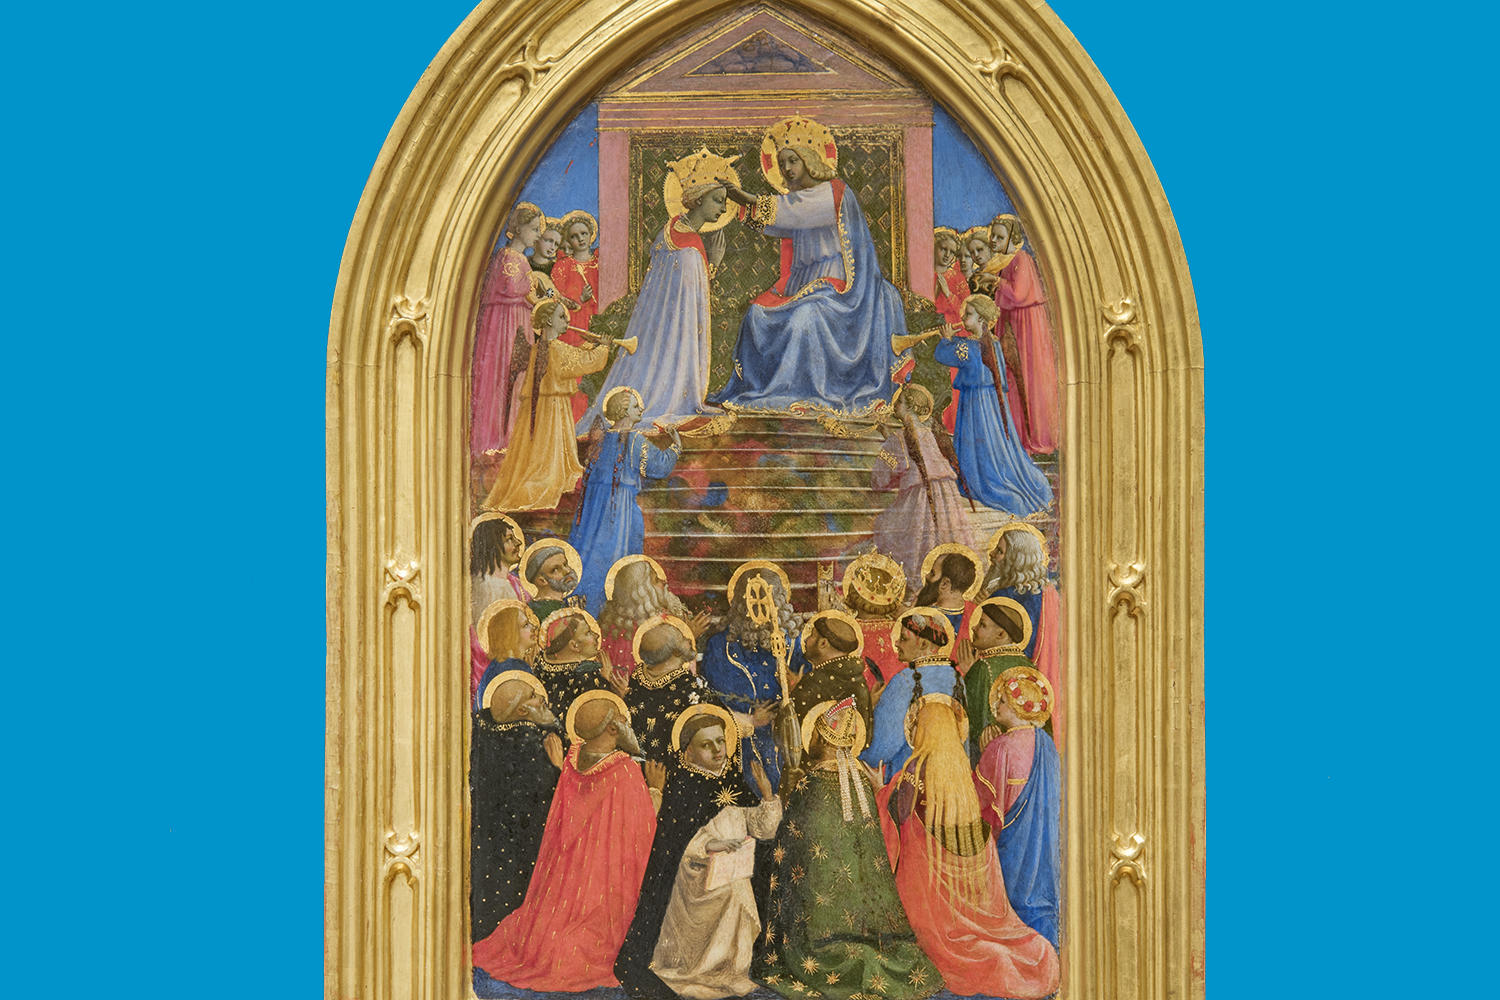 Fra Angelico (Italian, about 1400 - 1455), The Coronation of the Virgin, 1424-1434. Tempera with oil glazes and gold on panel, 77 x 43 cm (30 5/16 x 16 15/16 in.) Museo di San Marco, Florence – Polo Museale della Toscana